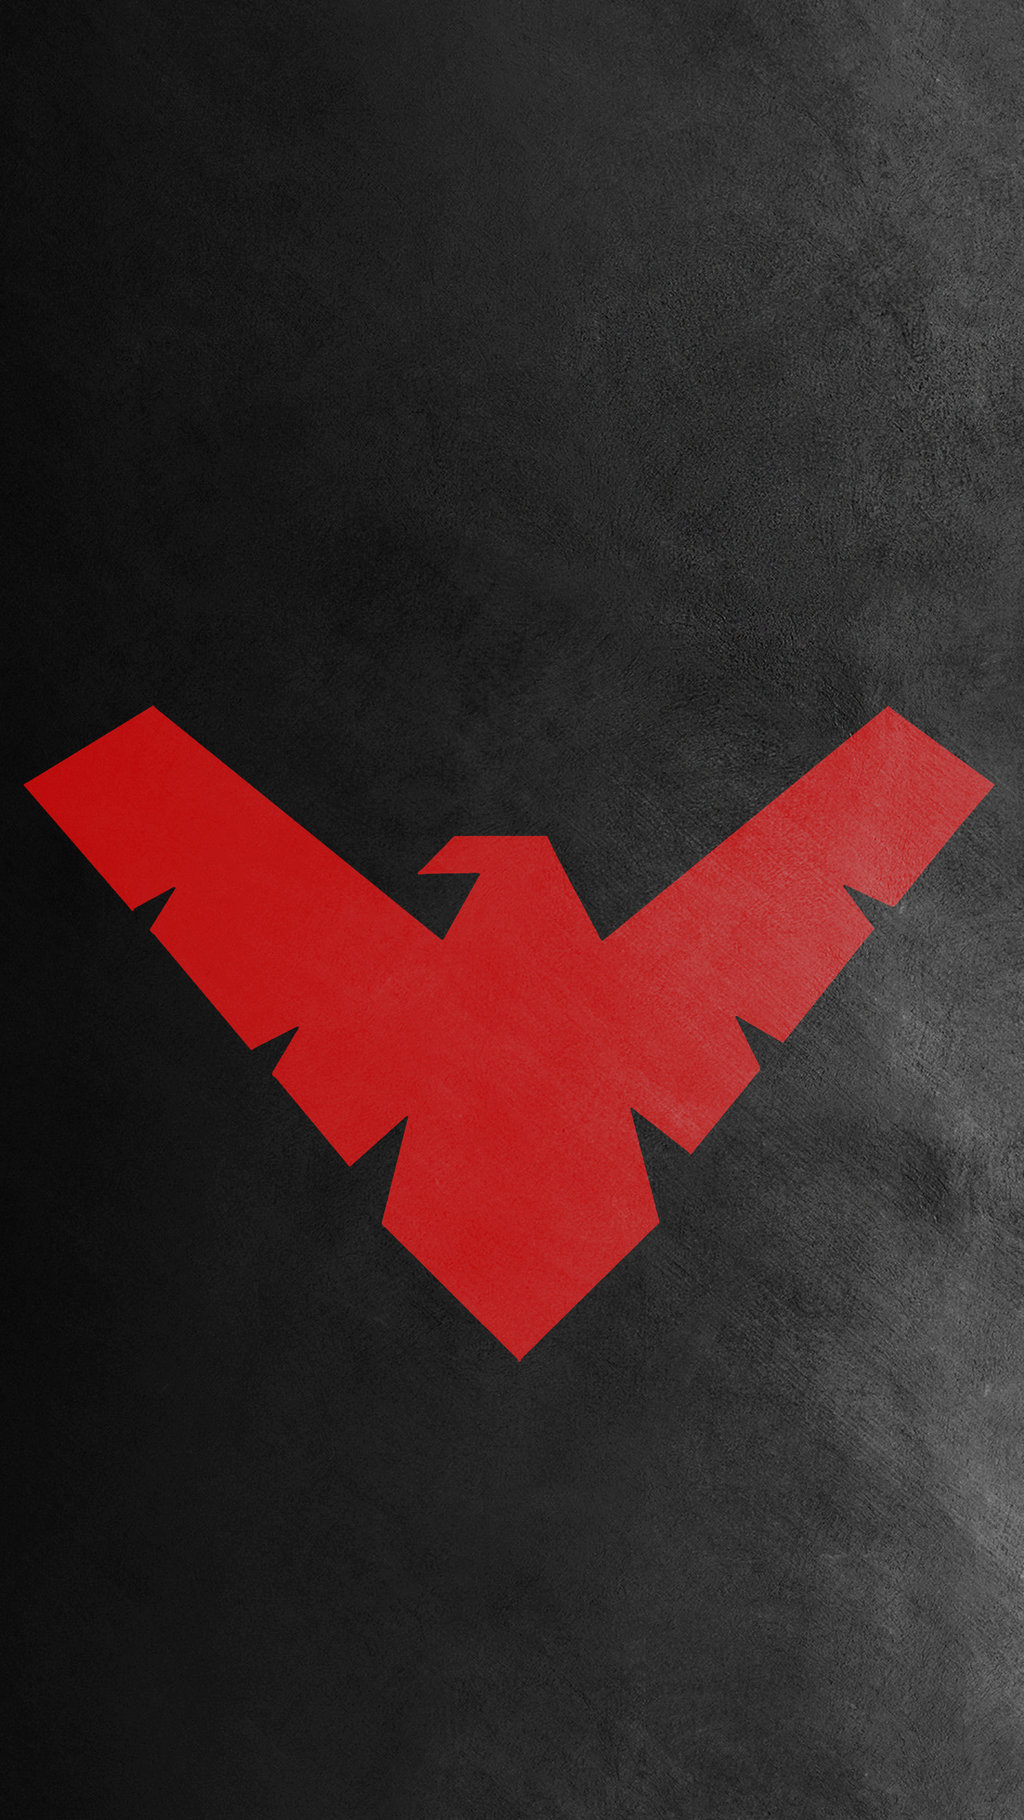 Nightwing iPhone Wallpaper by brendonarts 1024x1820